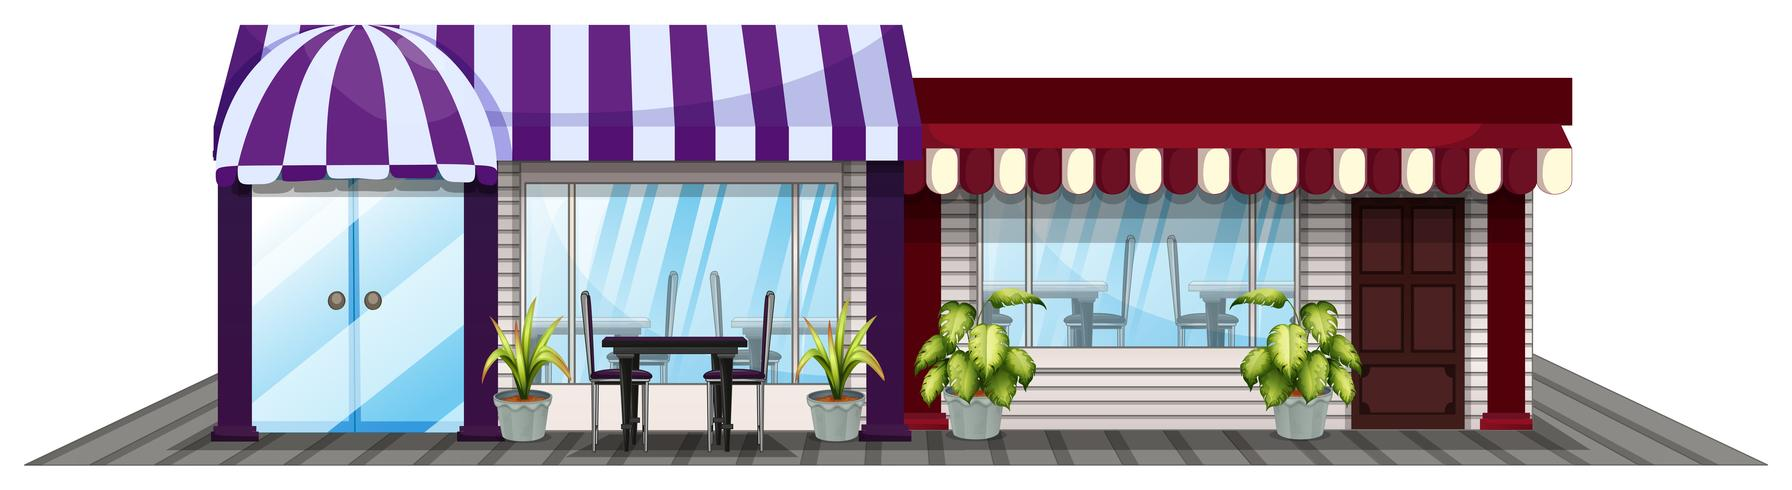 Two shops in purple and red